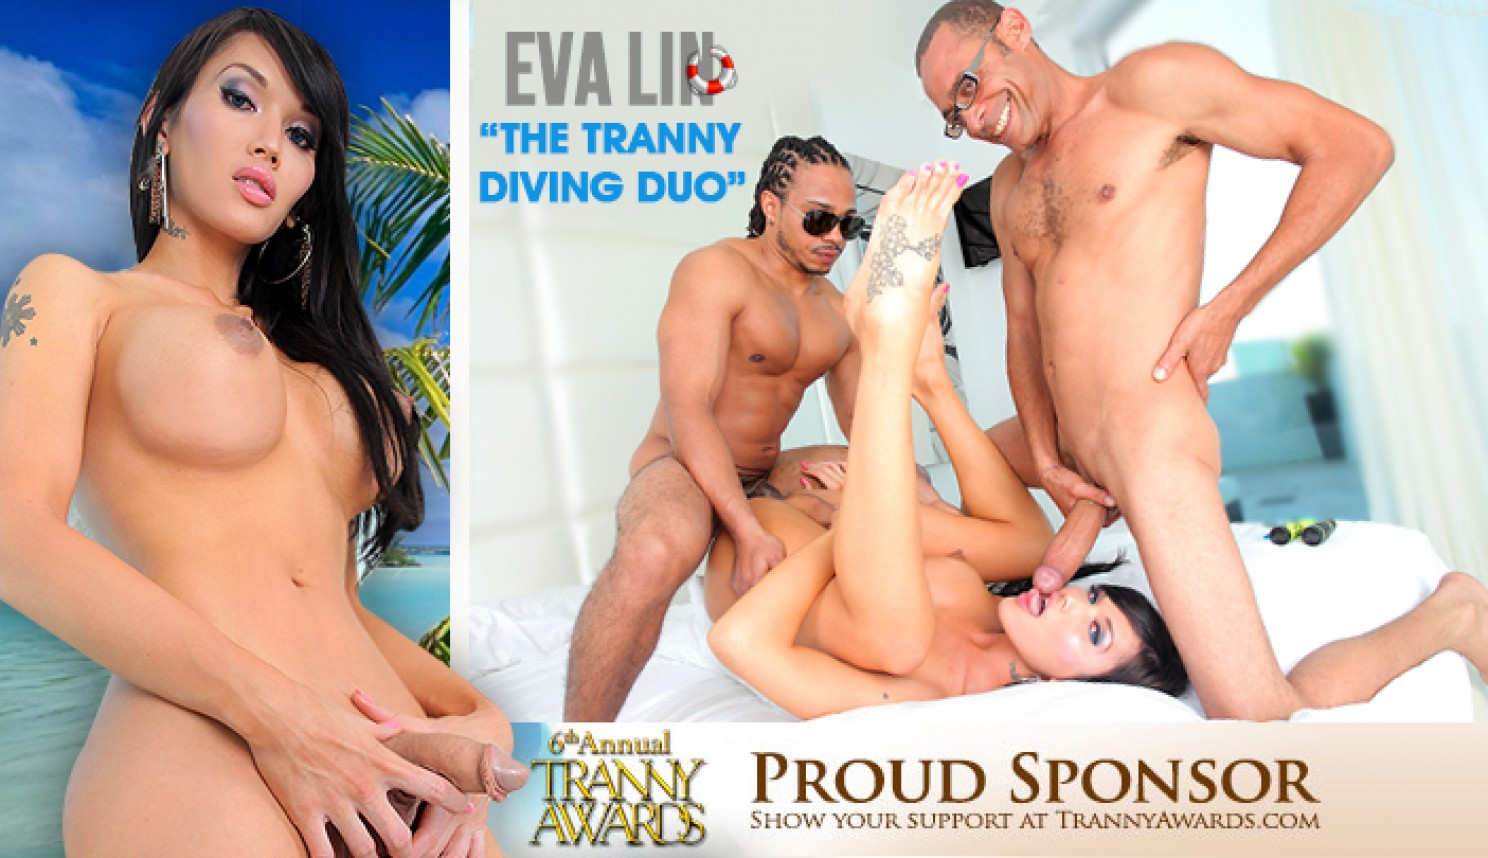 Eva Lin in The Tranny Diving Duo - IKillItTs Hairy Big Mom